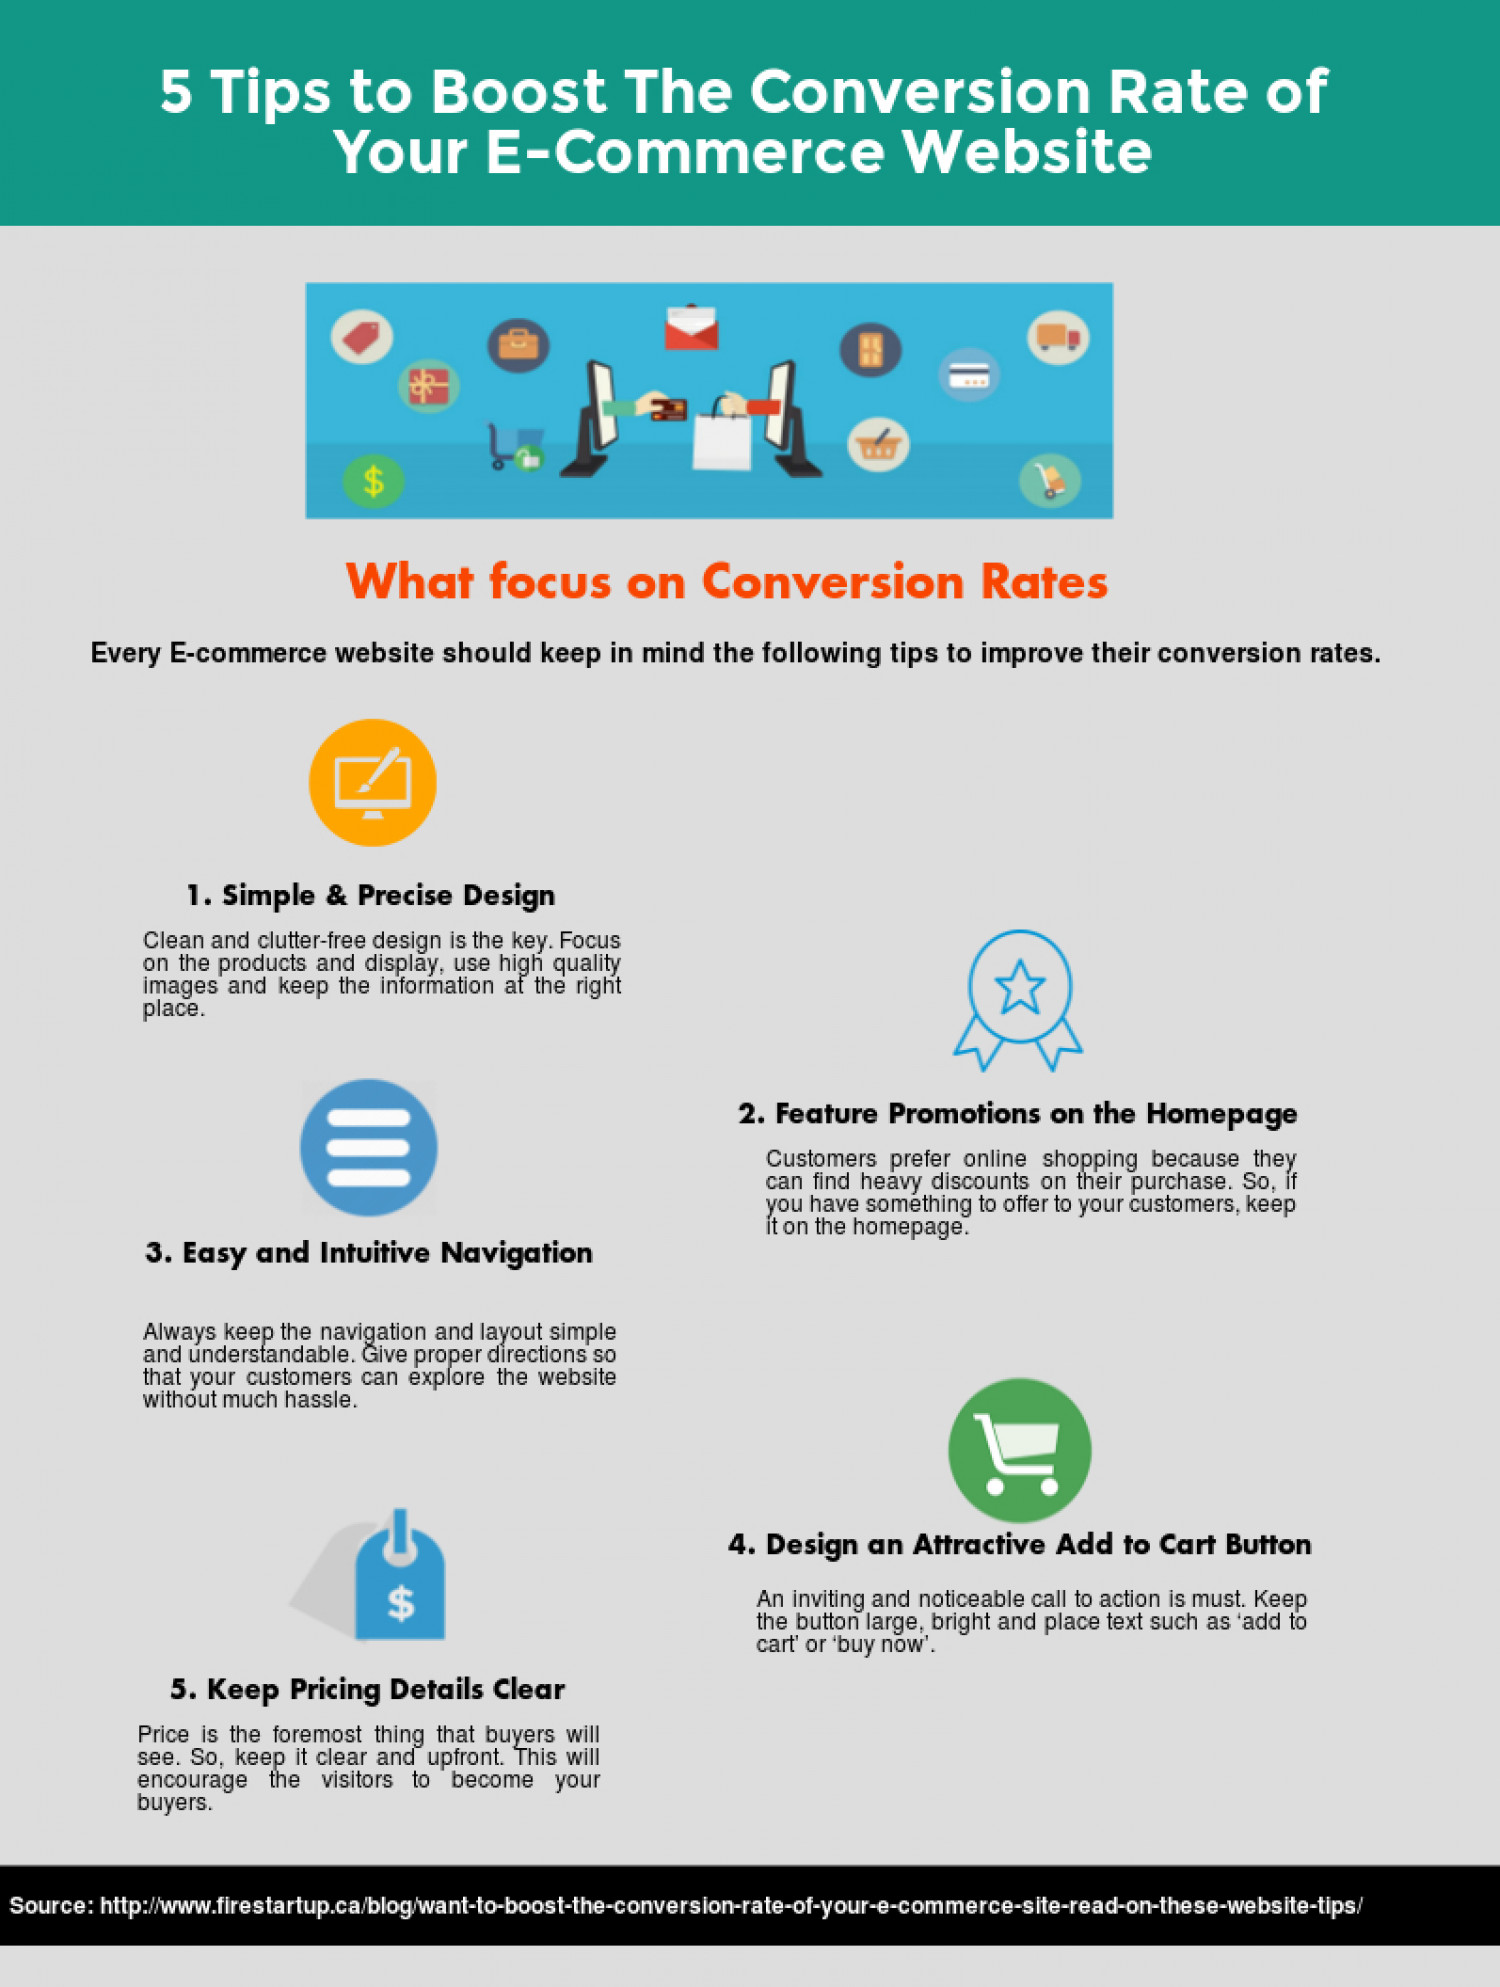 5 Tips to Boost The Conversion Rate of Your E-Commerce Website Infographic